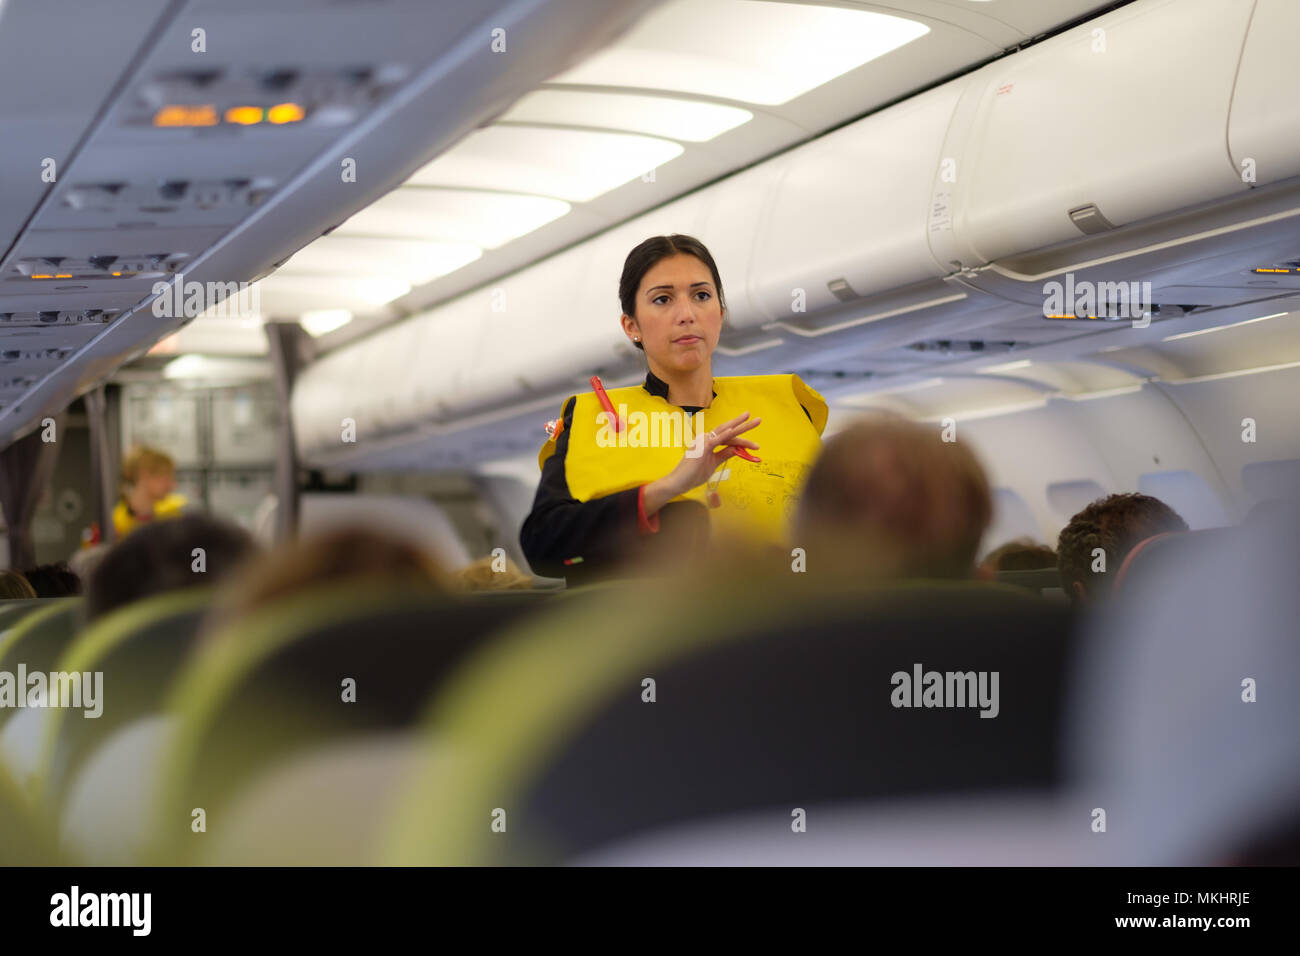 A flight attendant demonstrating inflatable life vest usage - Stock Image